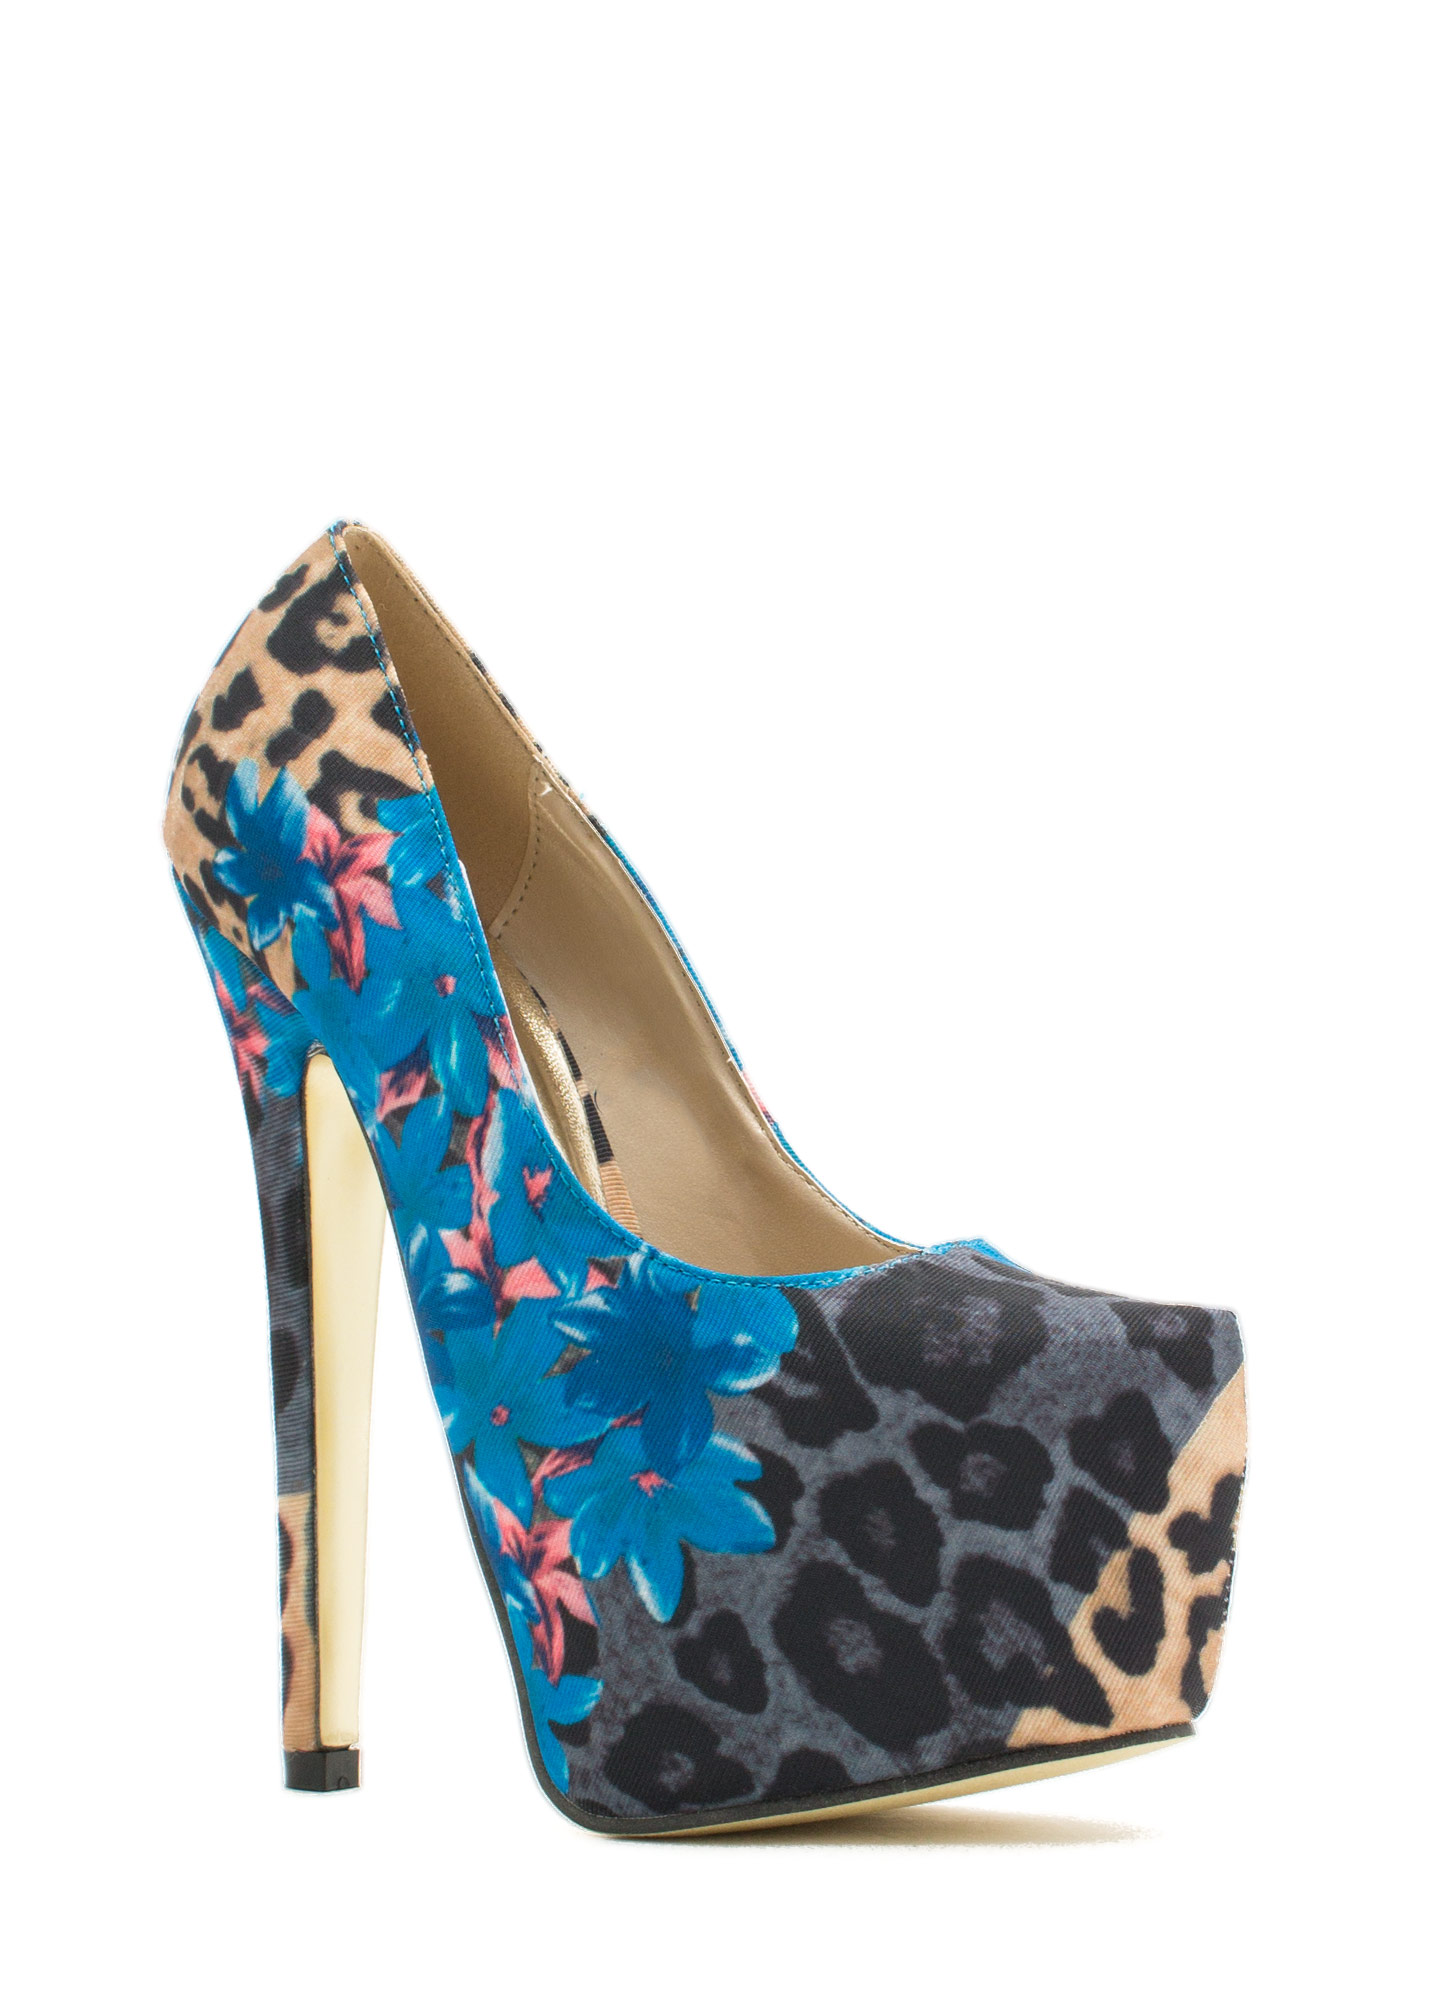 Tropical Wild Animal Platform Pump BLUEMULTI